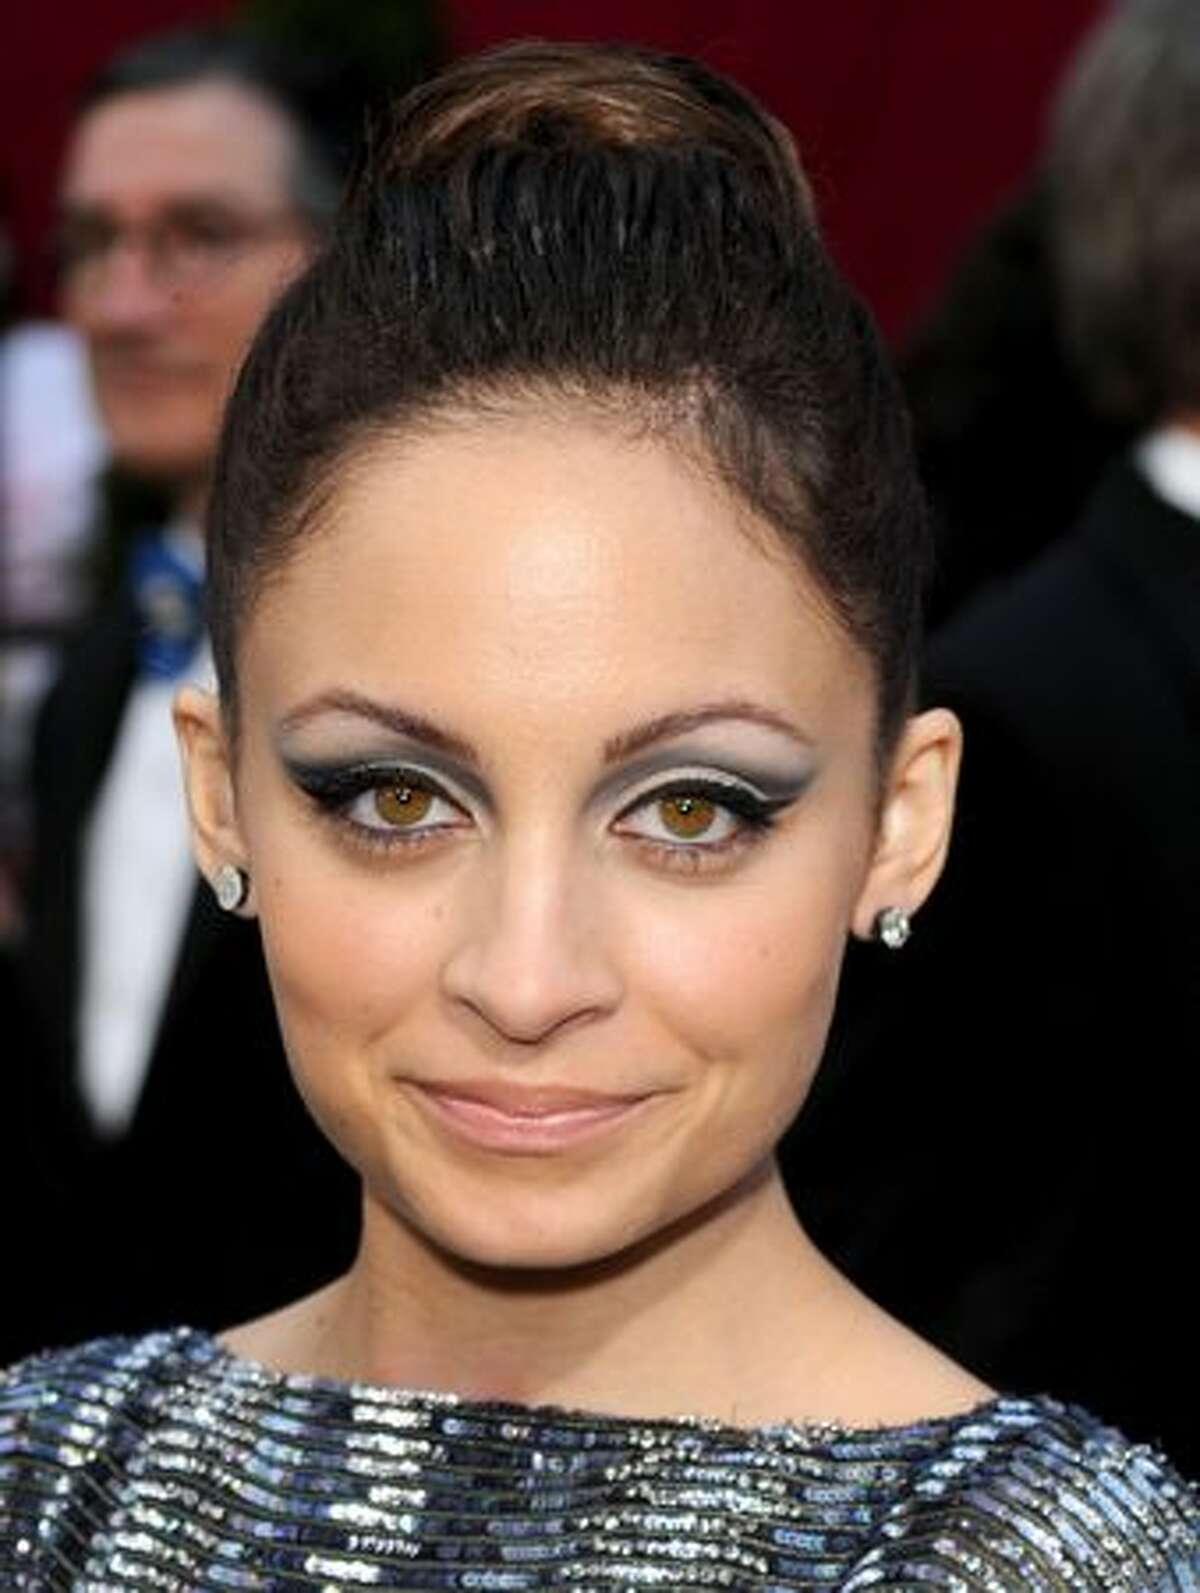 Nicole Richie arrives at the 82nd Annual Academy Awards held at Kodak Theatre in Hollywood, California.